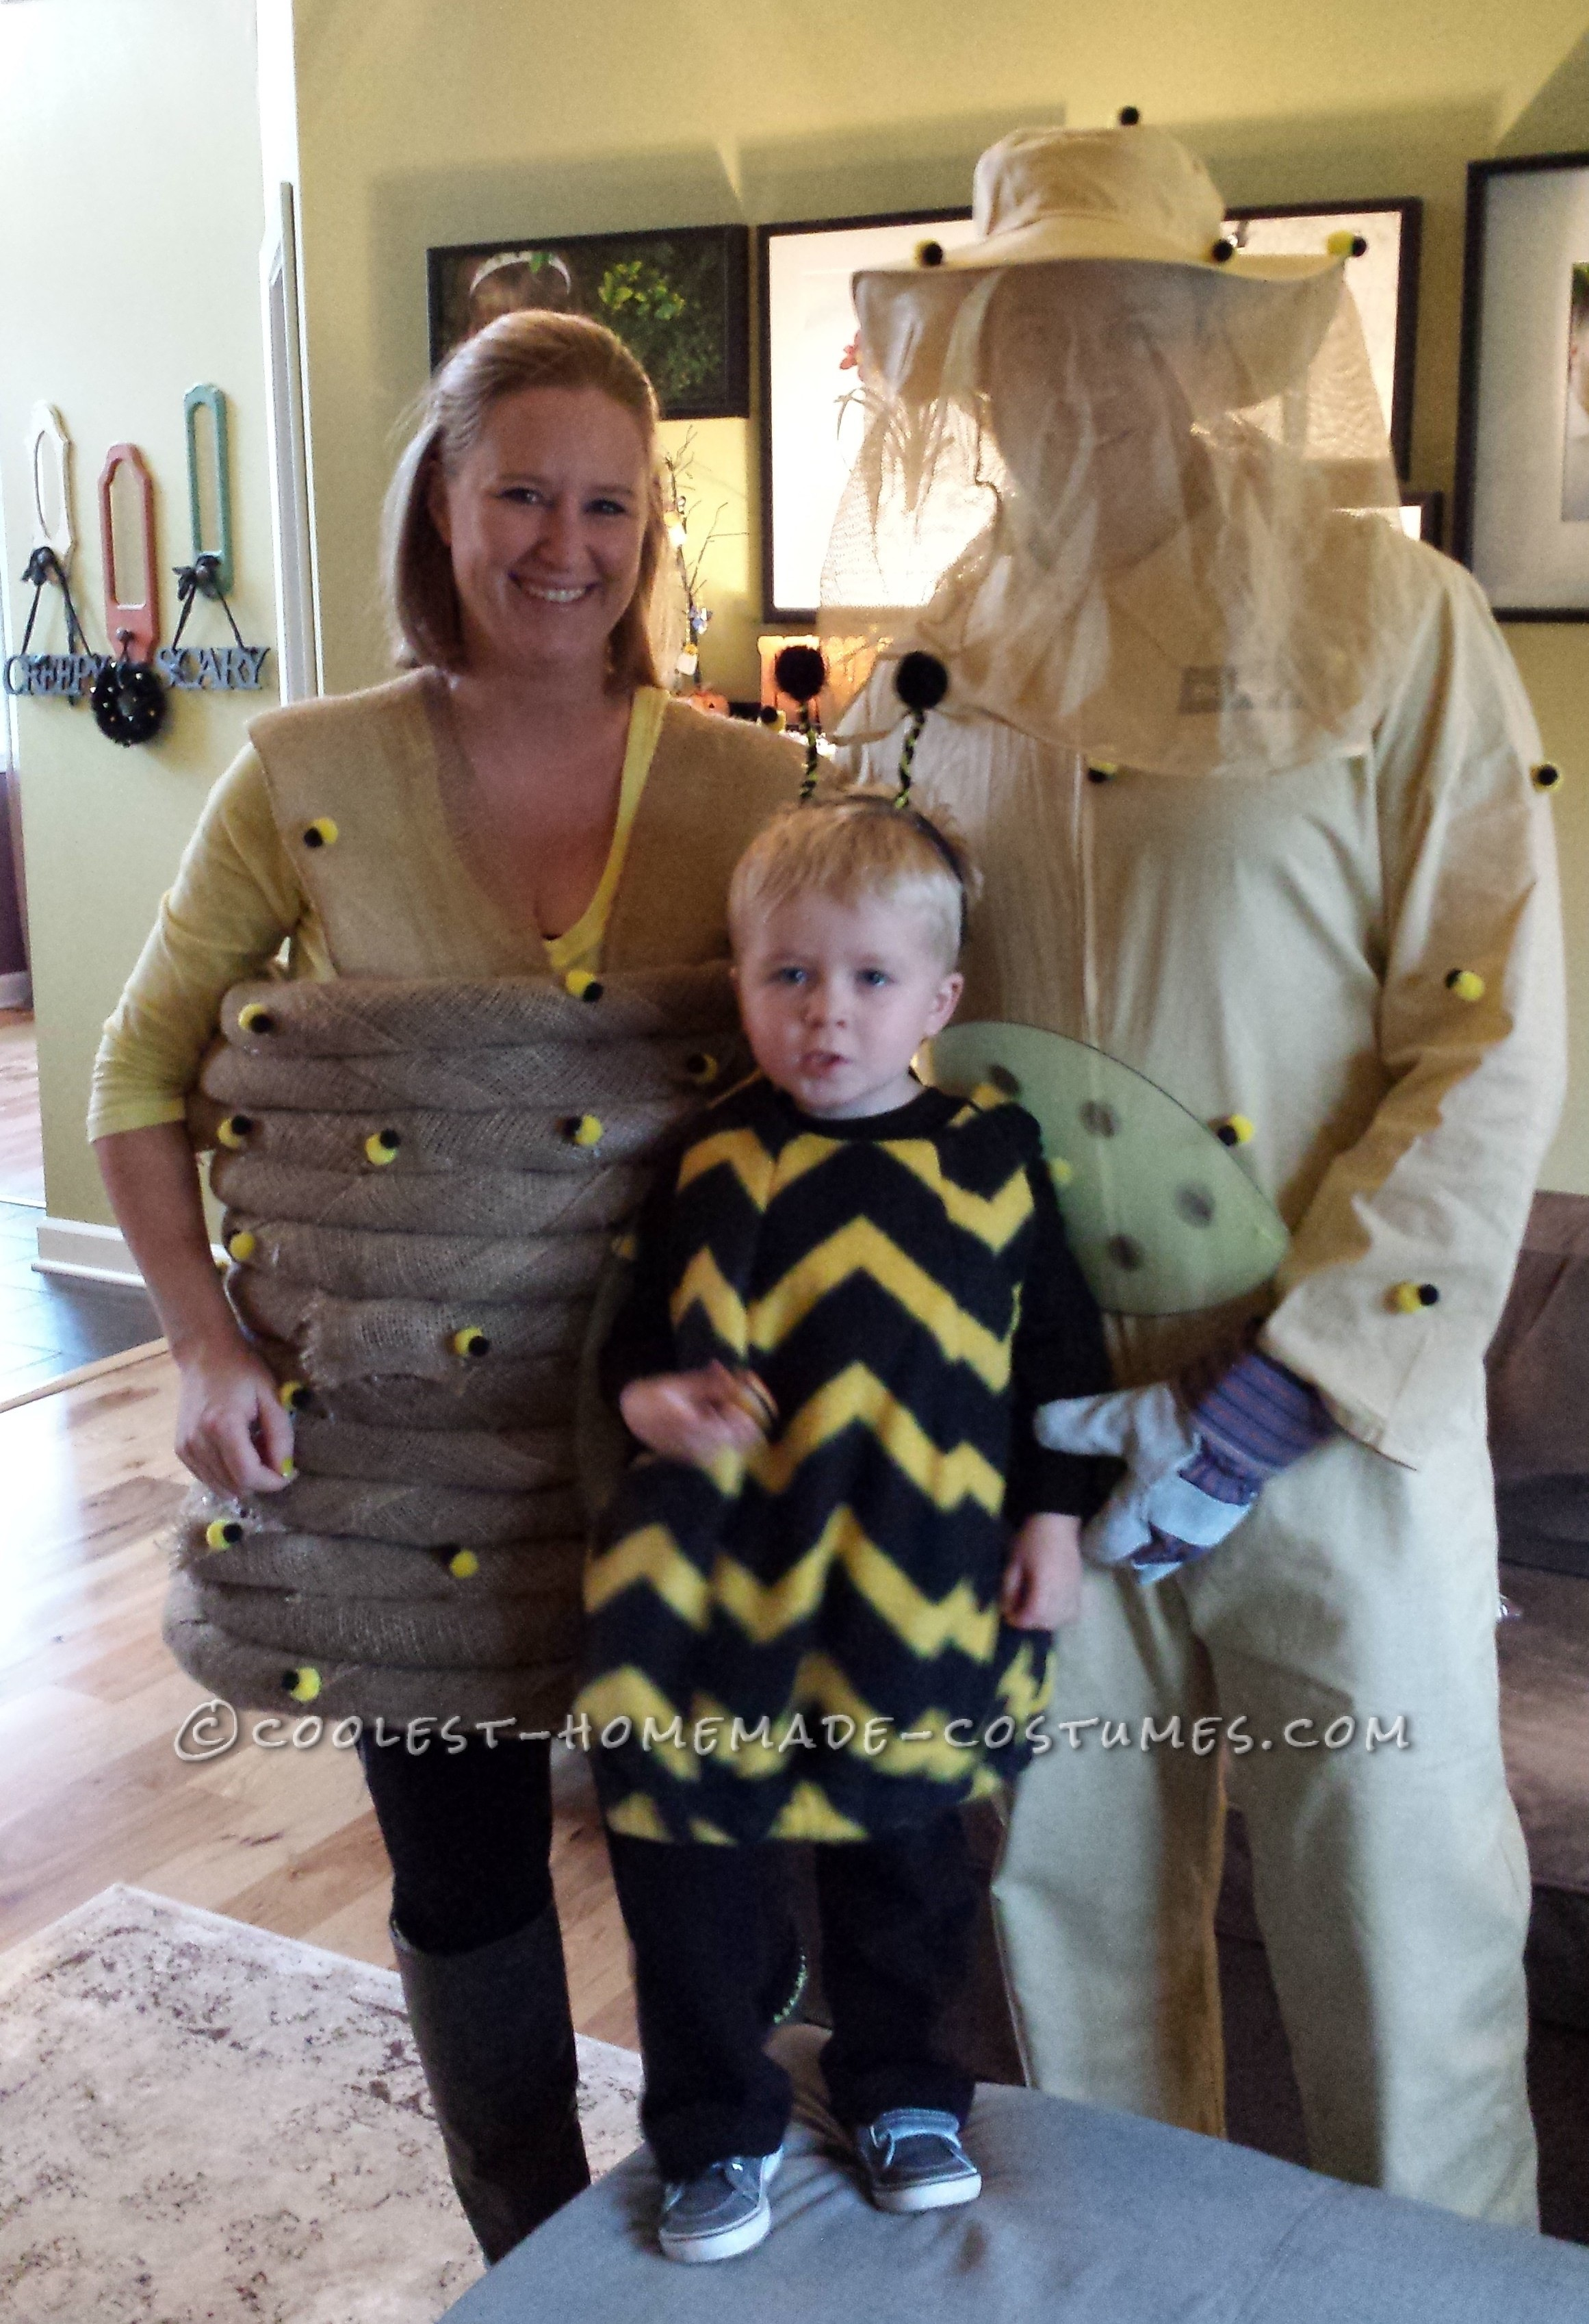 Cute Bee-Themed Family Costume